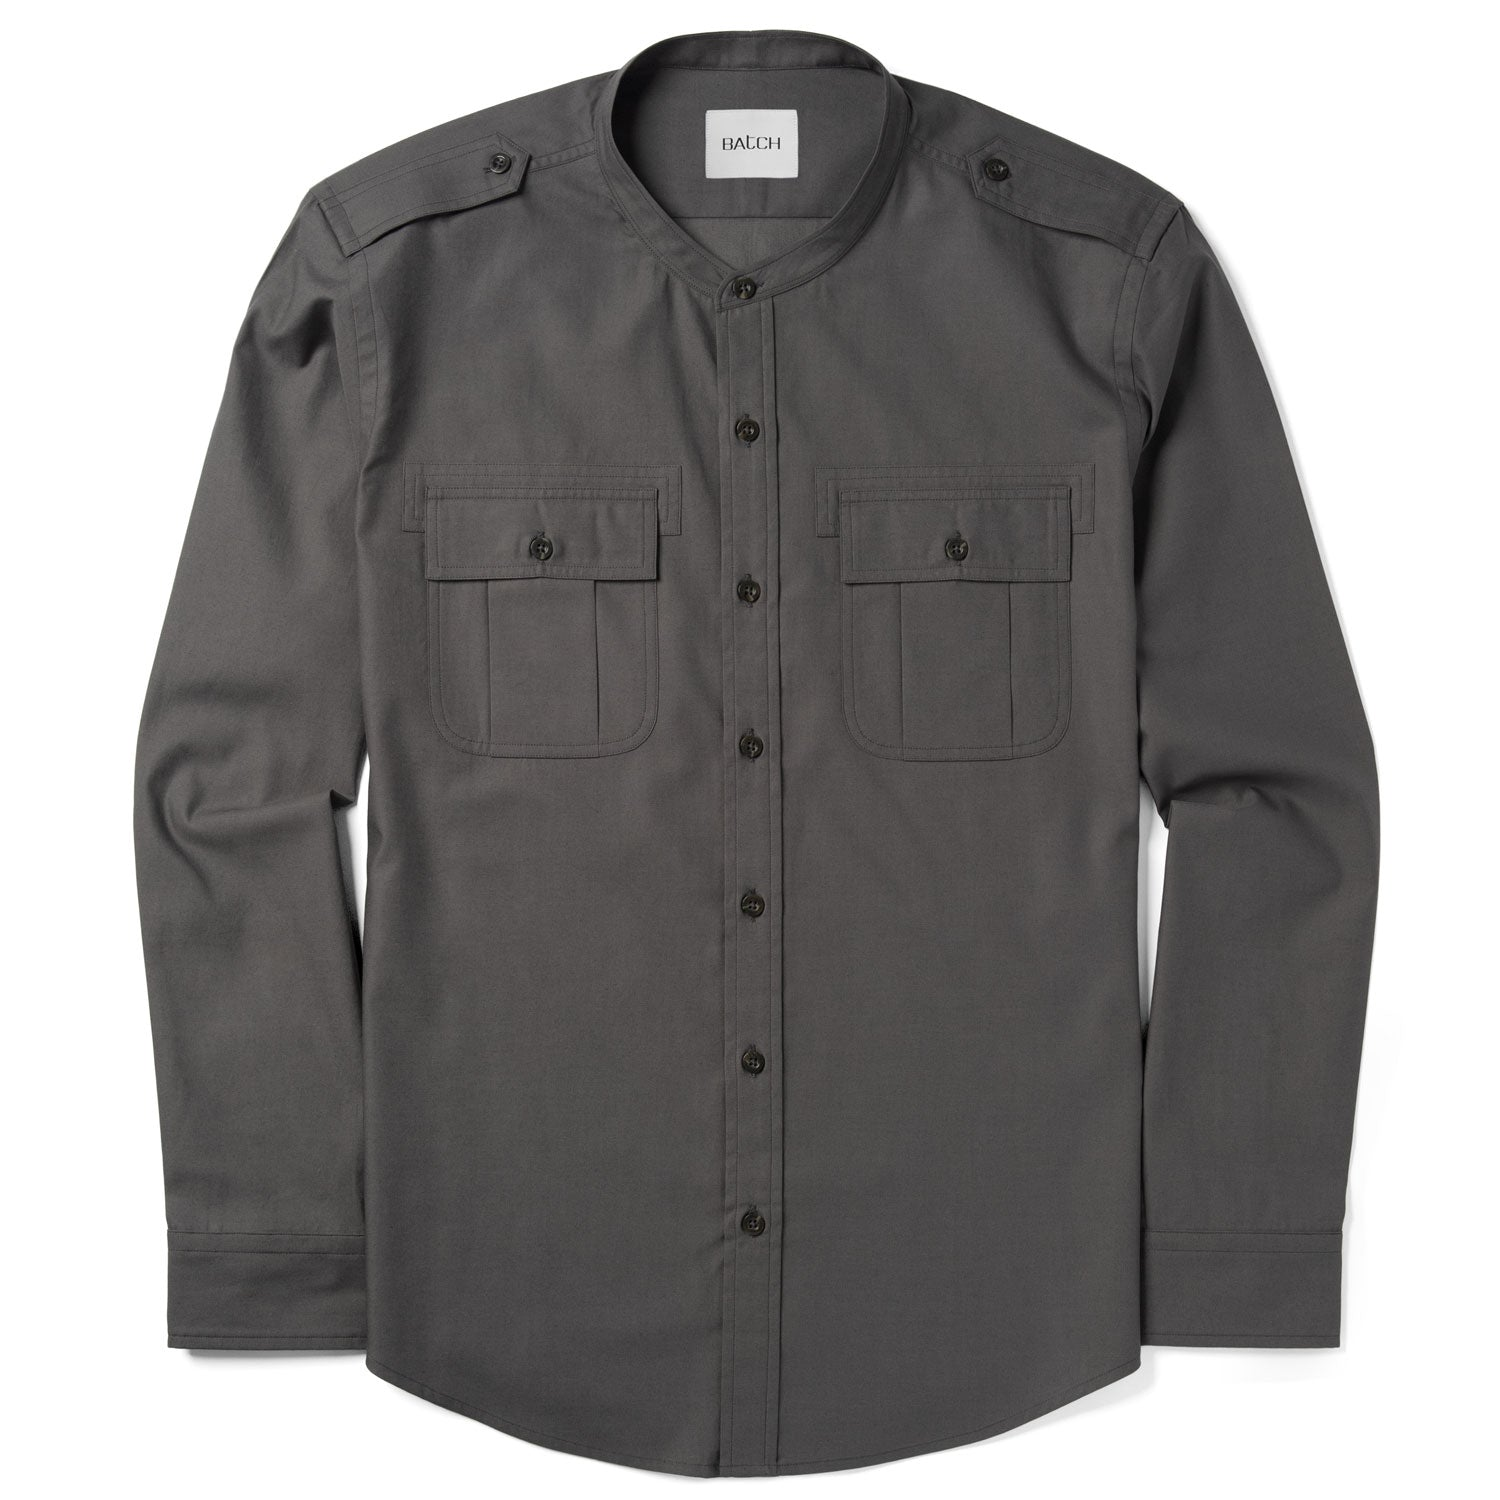 Convoy Band Collar Utility Shirt – Industrial Gray Mercerized Cotton